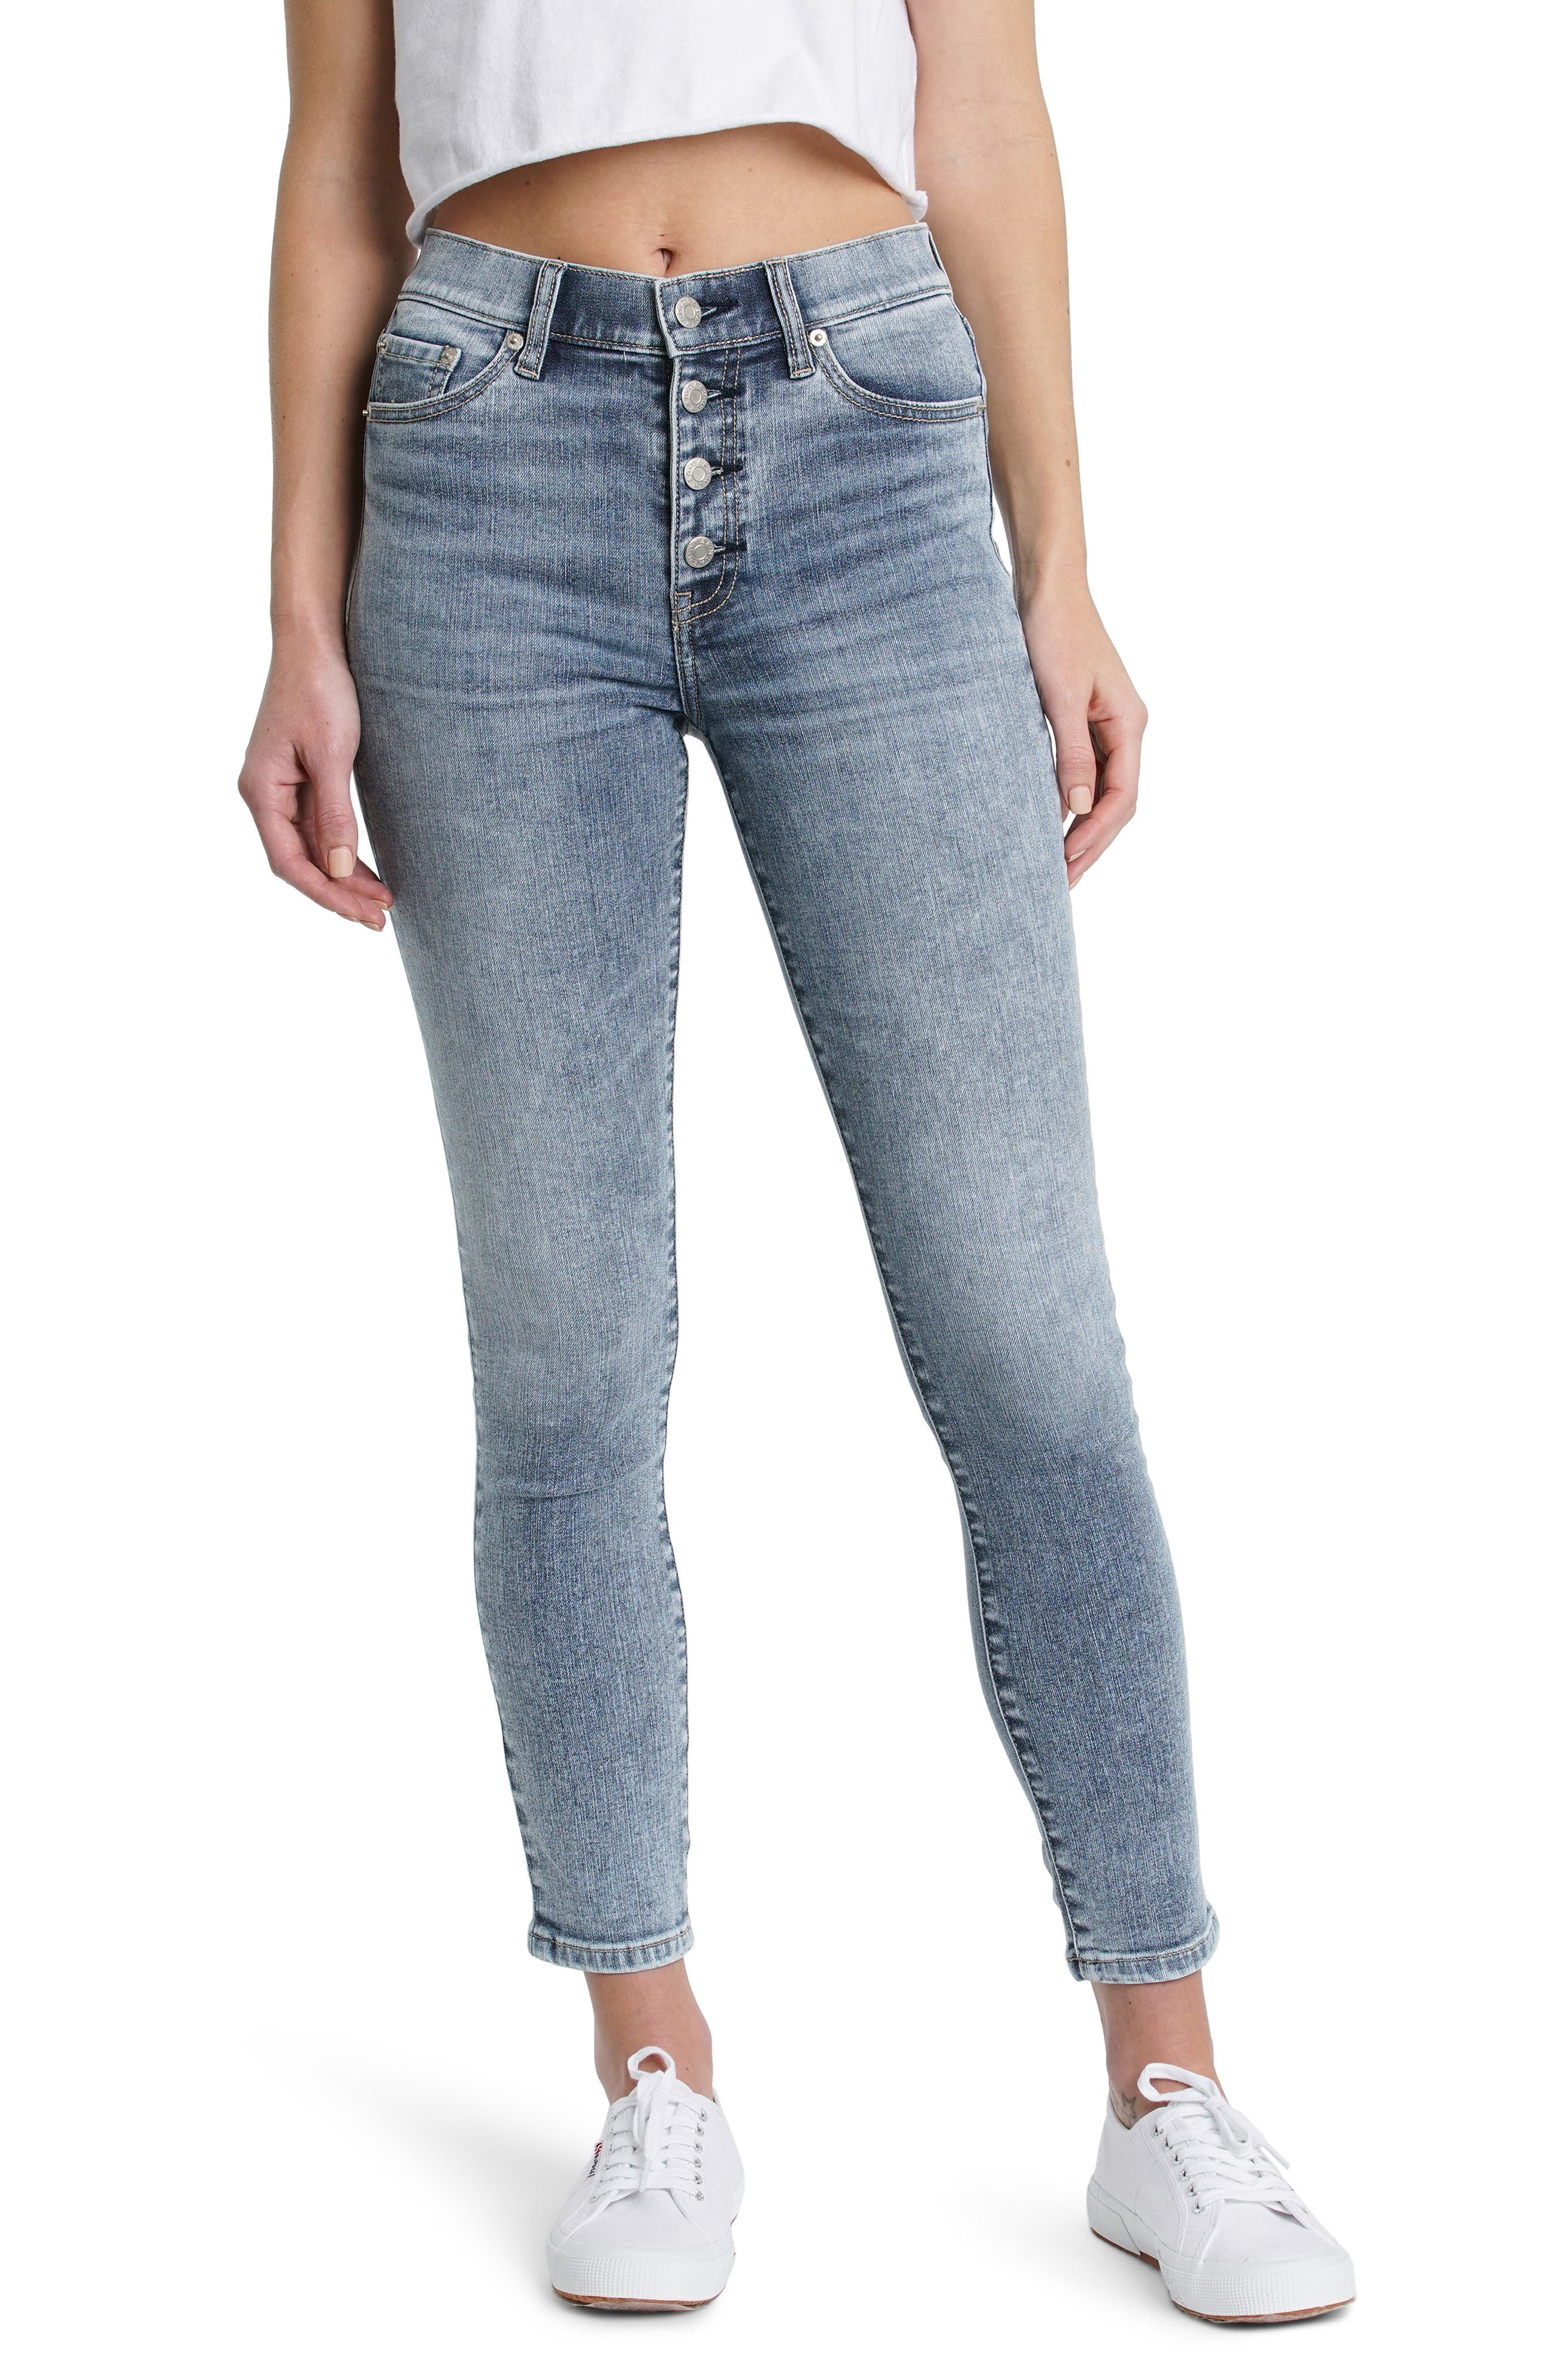 DAZE Call You Back High Waist Skinny Jeans (Fast Times) | Nordstrom